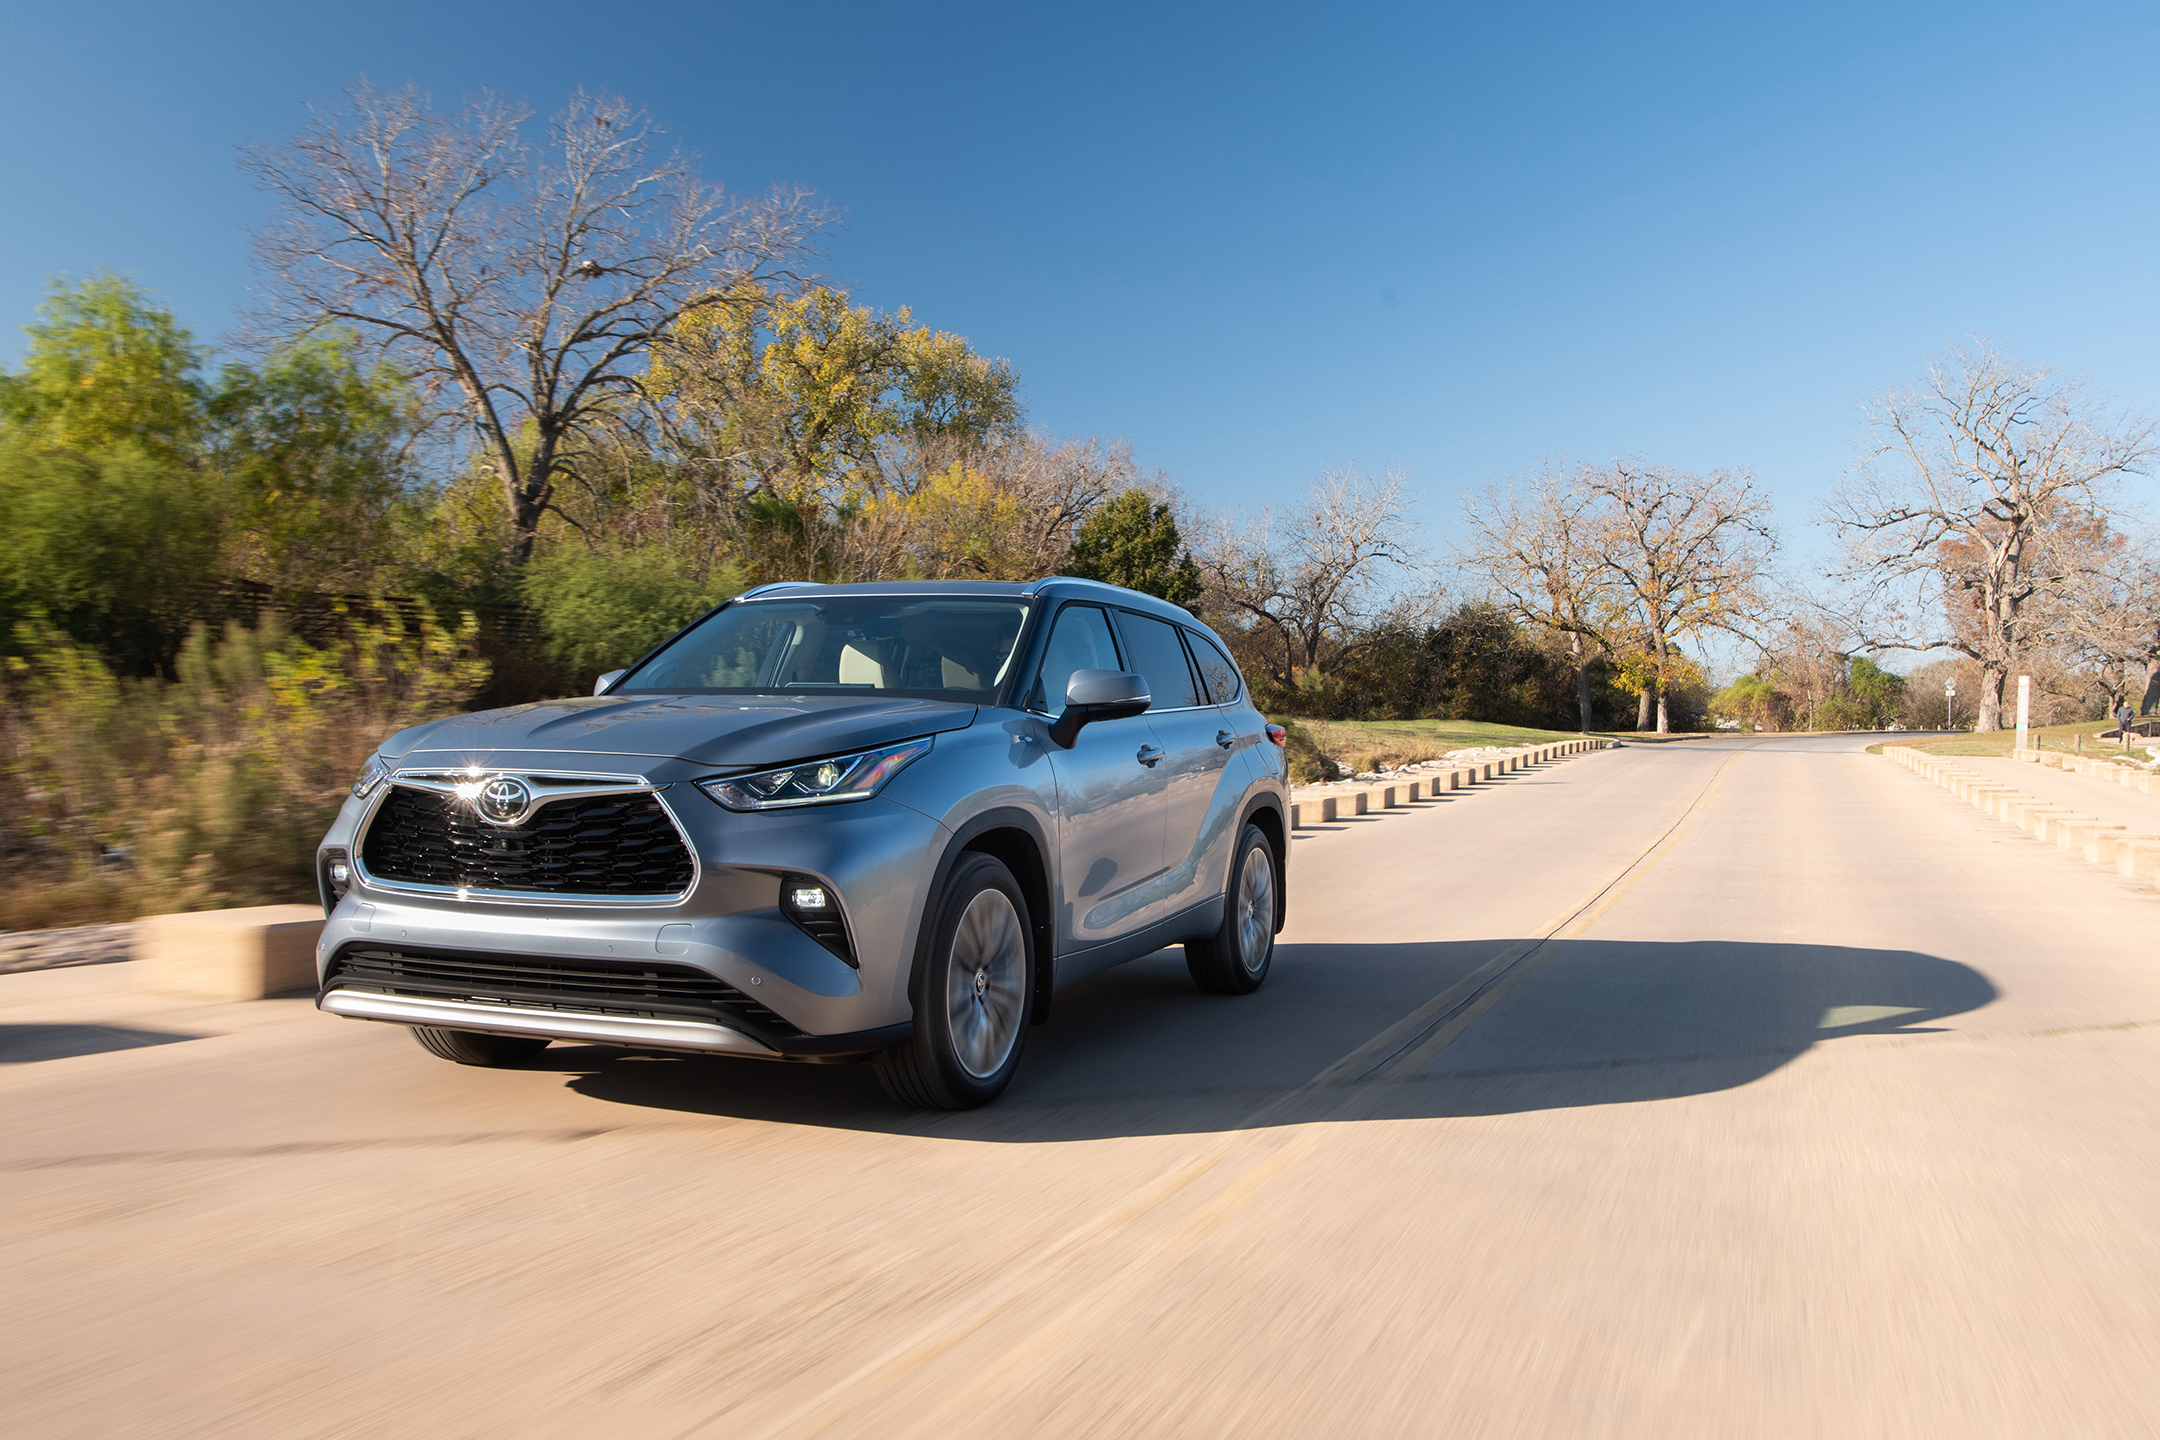 2020 Toyota Highlander Well Equipped But Whoa Nelly Priced